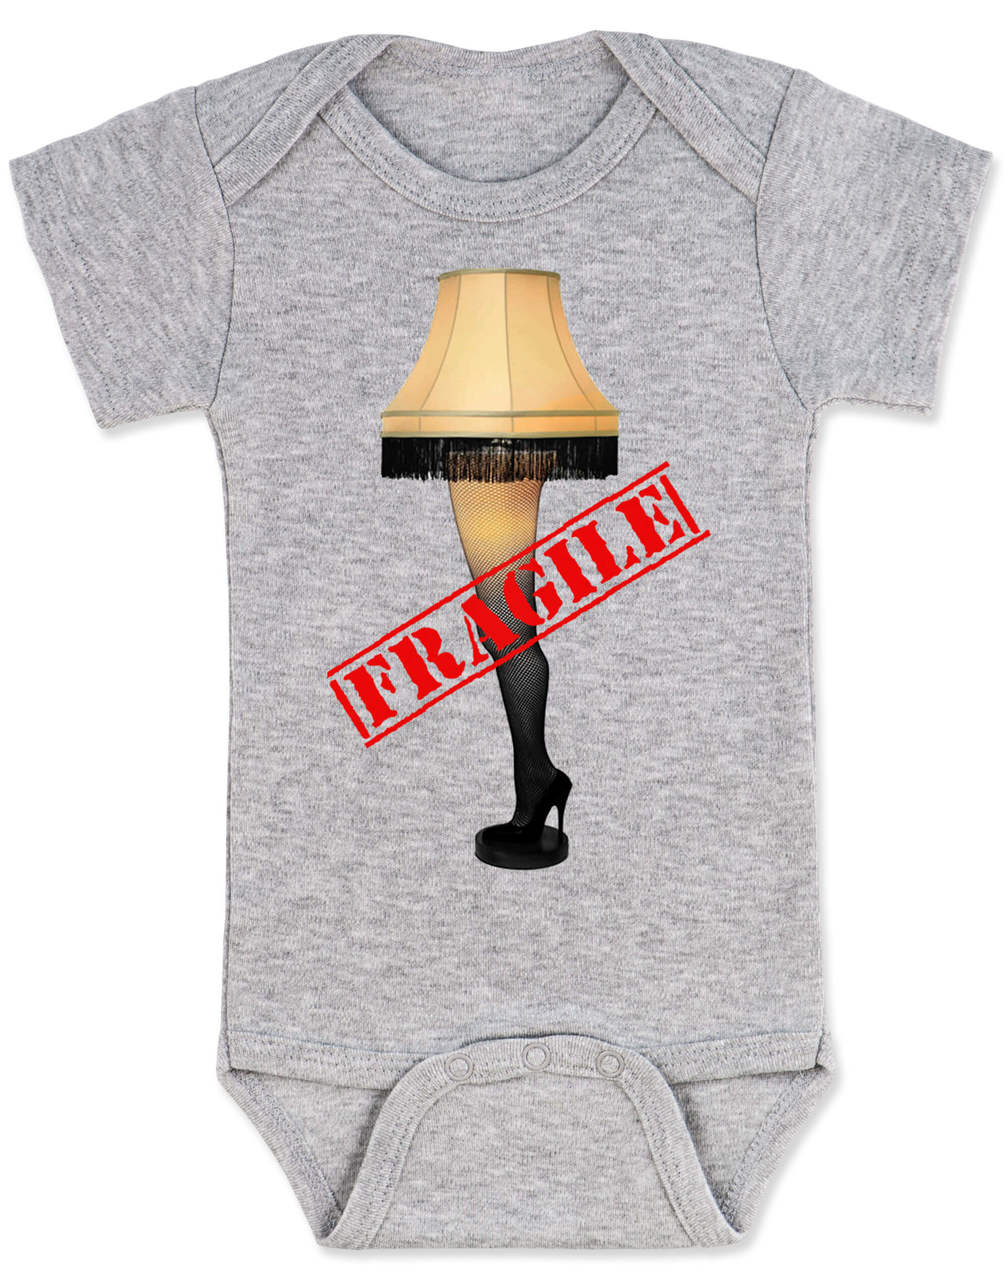 Christmas Story Leg Lamp Baby Onesie, Fragile Onsie, Classic Christmas Movie  Onesie, A